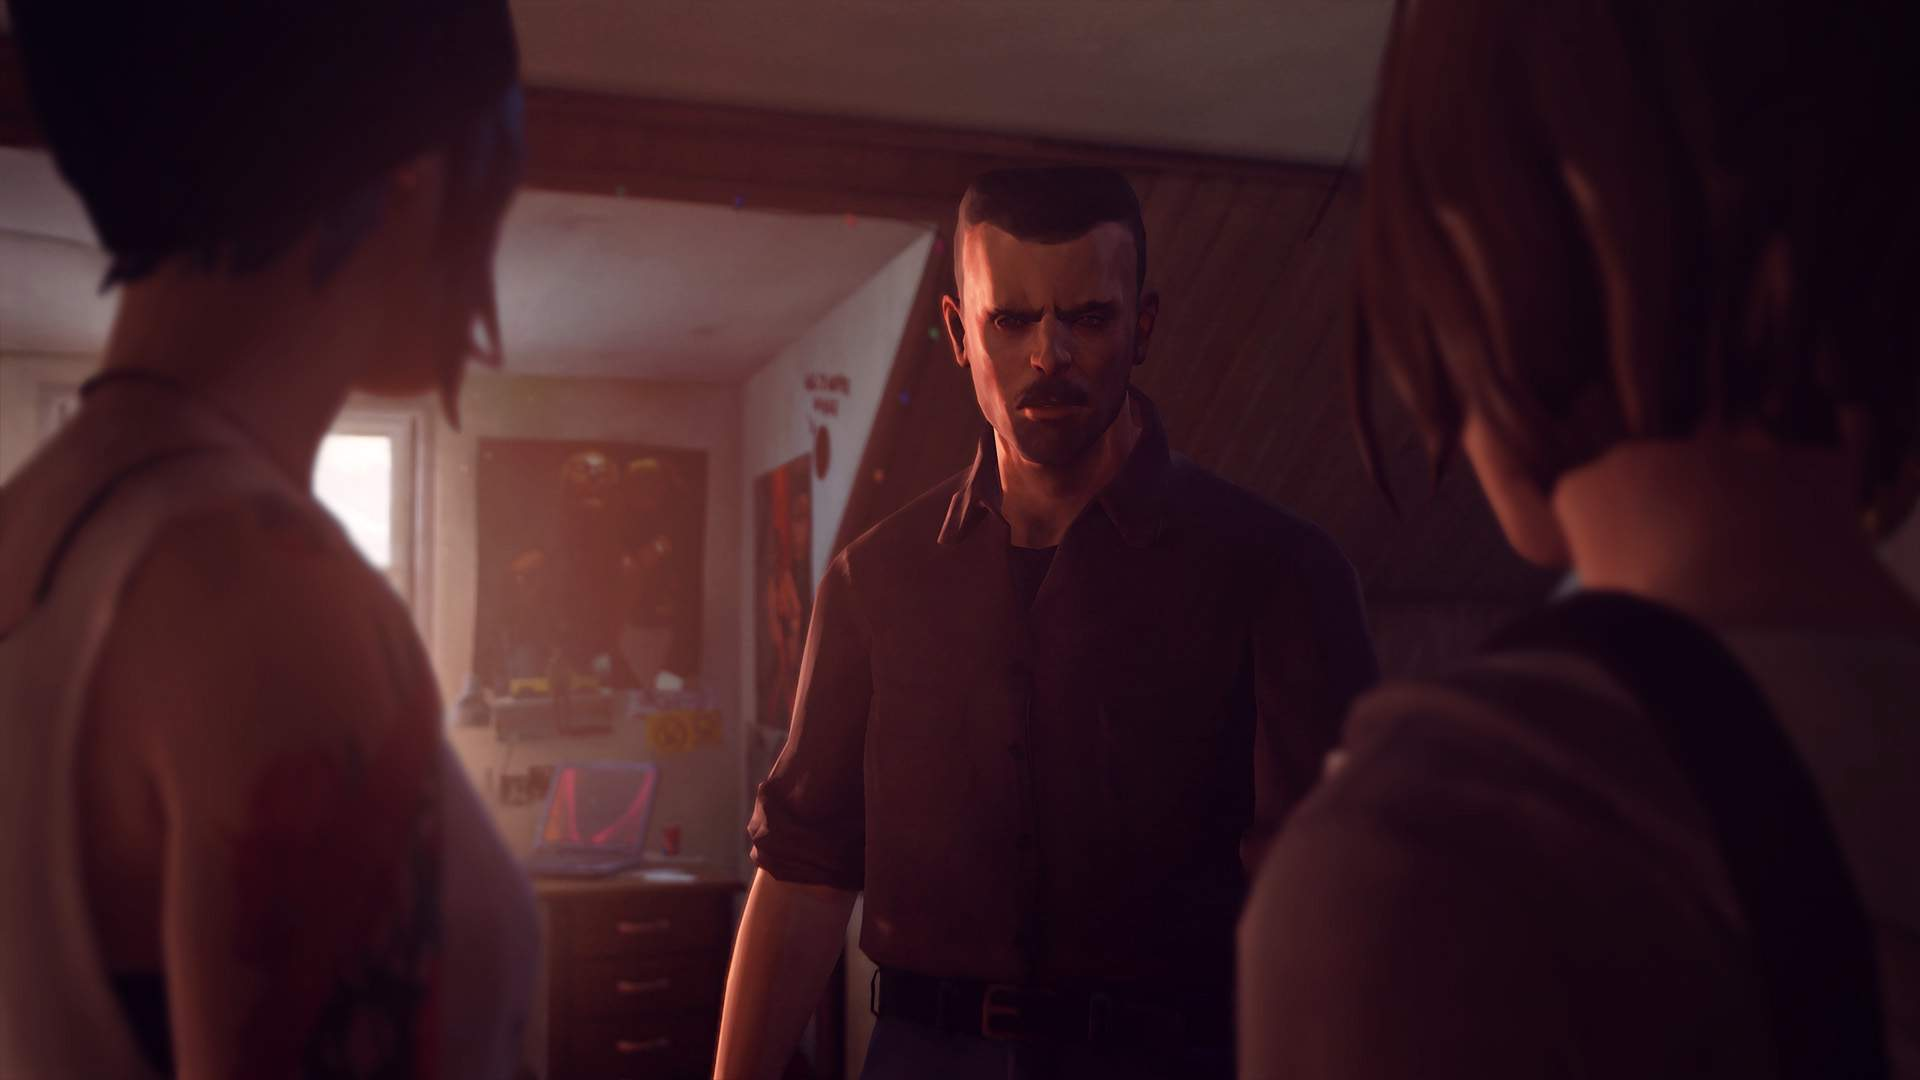 In Chloe's bedroom, Chloe's stepfather David sternly confronts Chloe and Max.